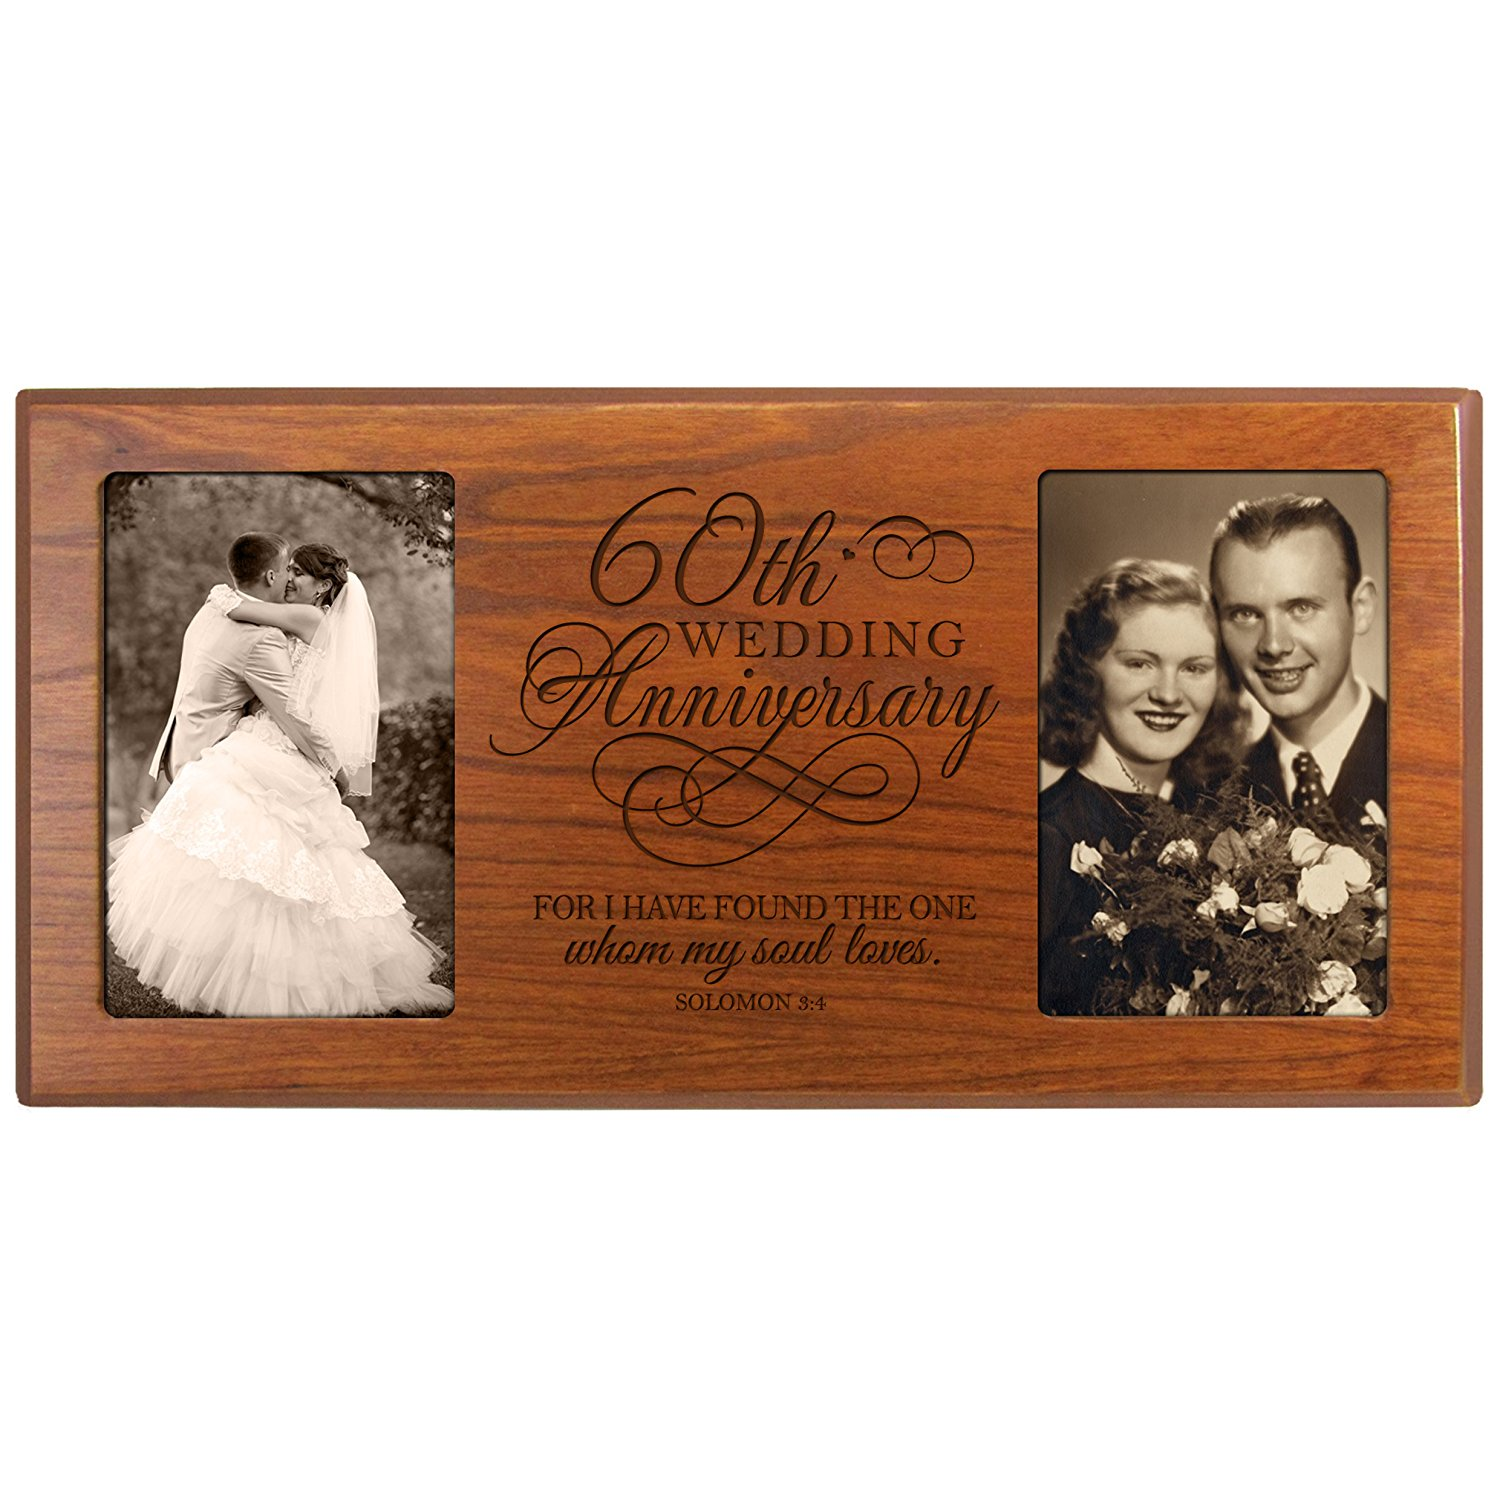 Personalized 60th Anniversary Gifts Picture frame custom 60 year wedding anniversary gift housewarming ideas for parents Couple him and her I have found the one whom my soul loves Solomon 3:4 (Cherry)